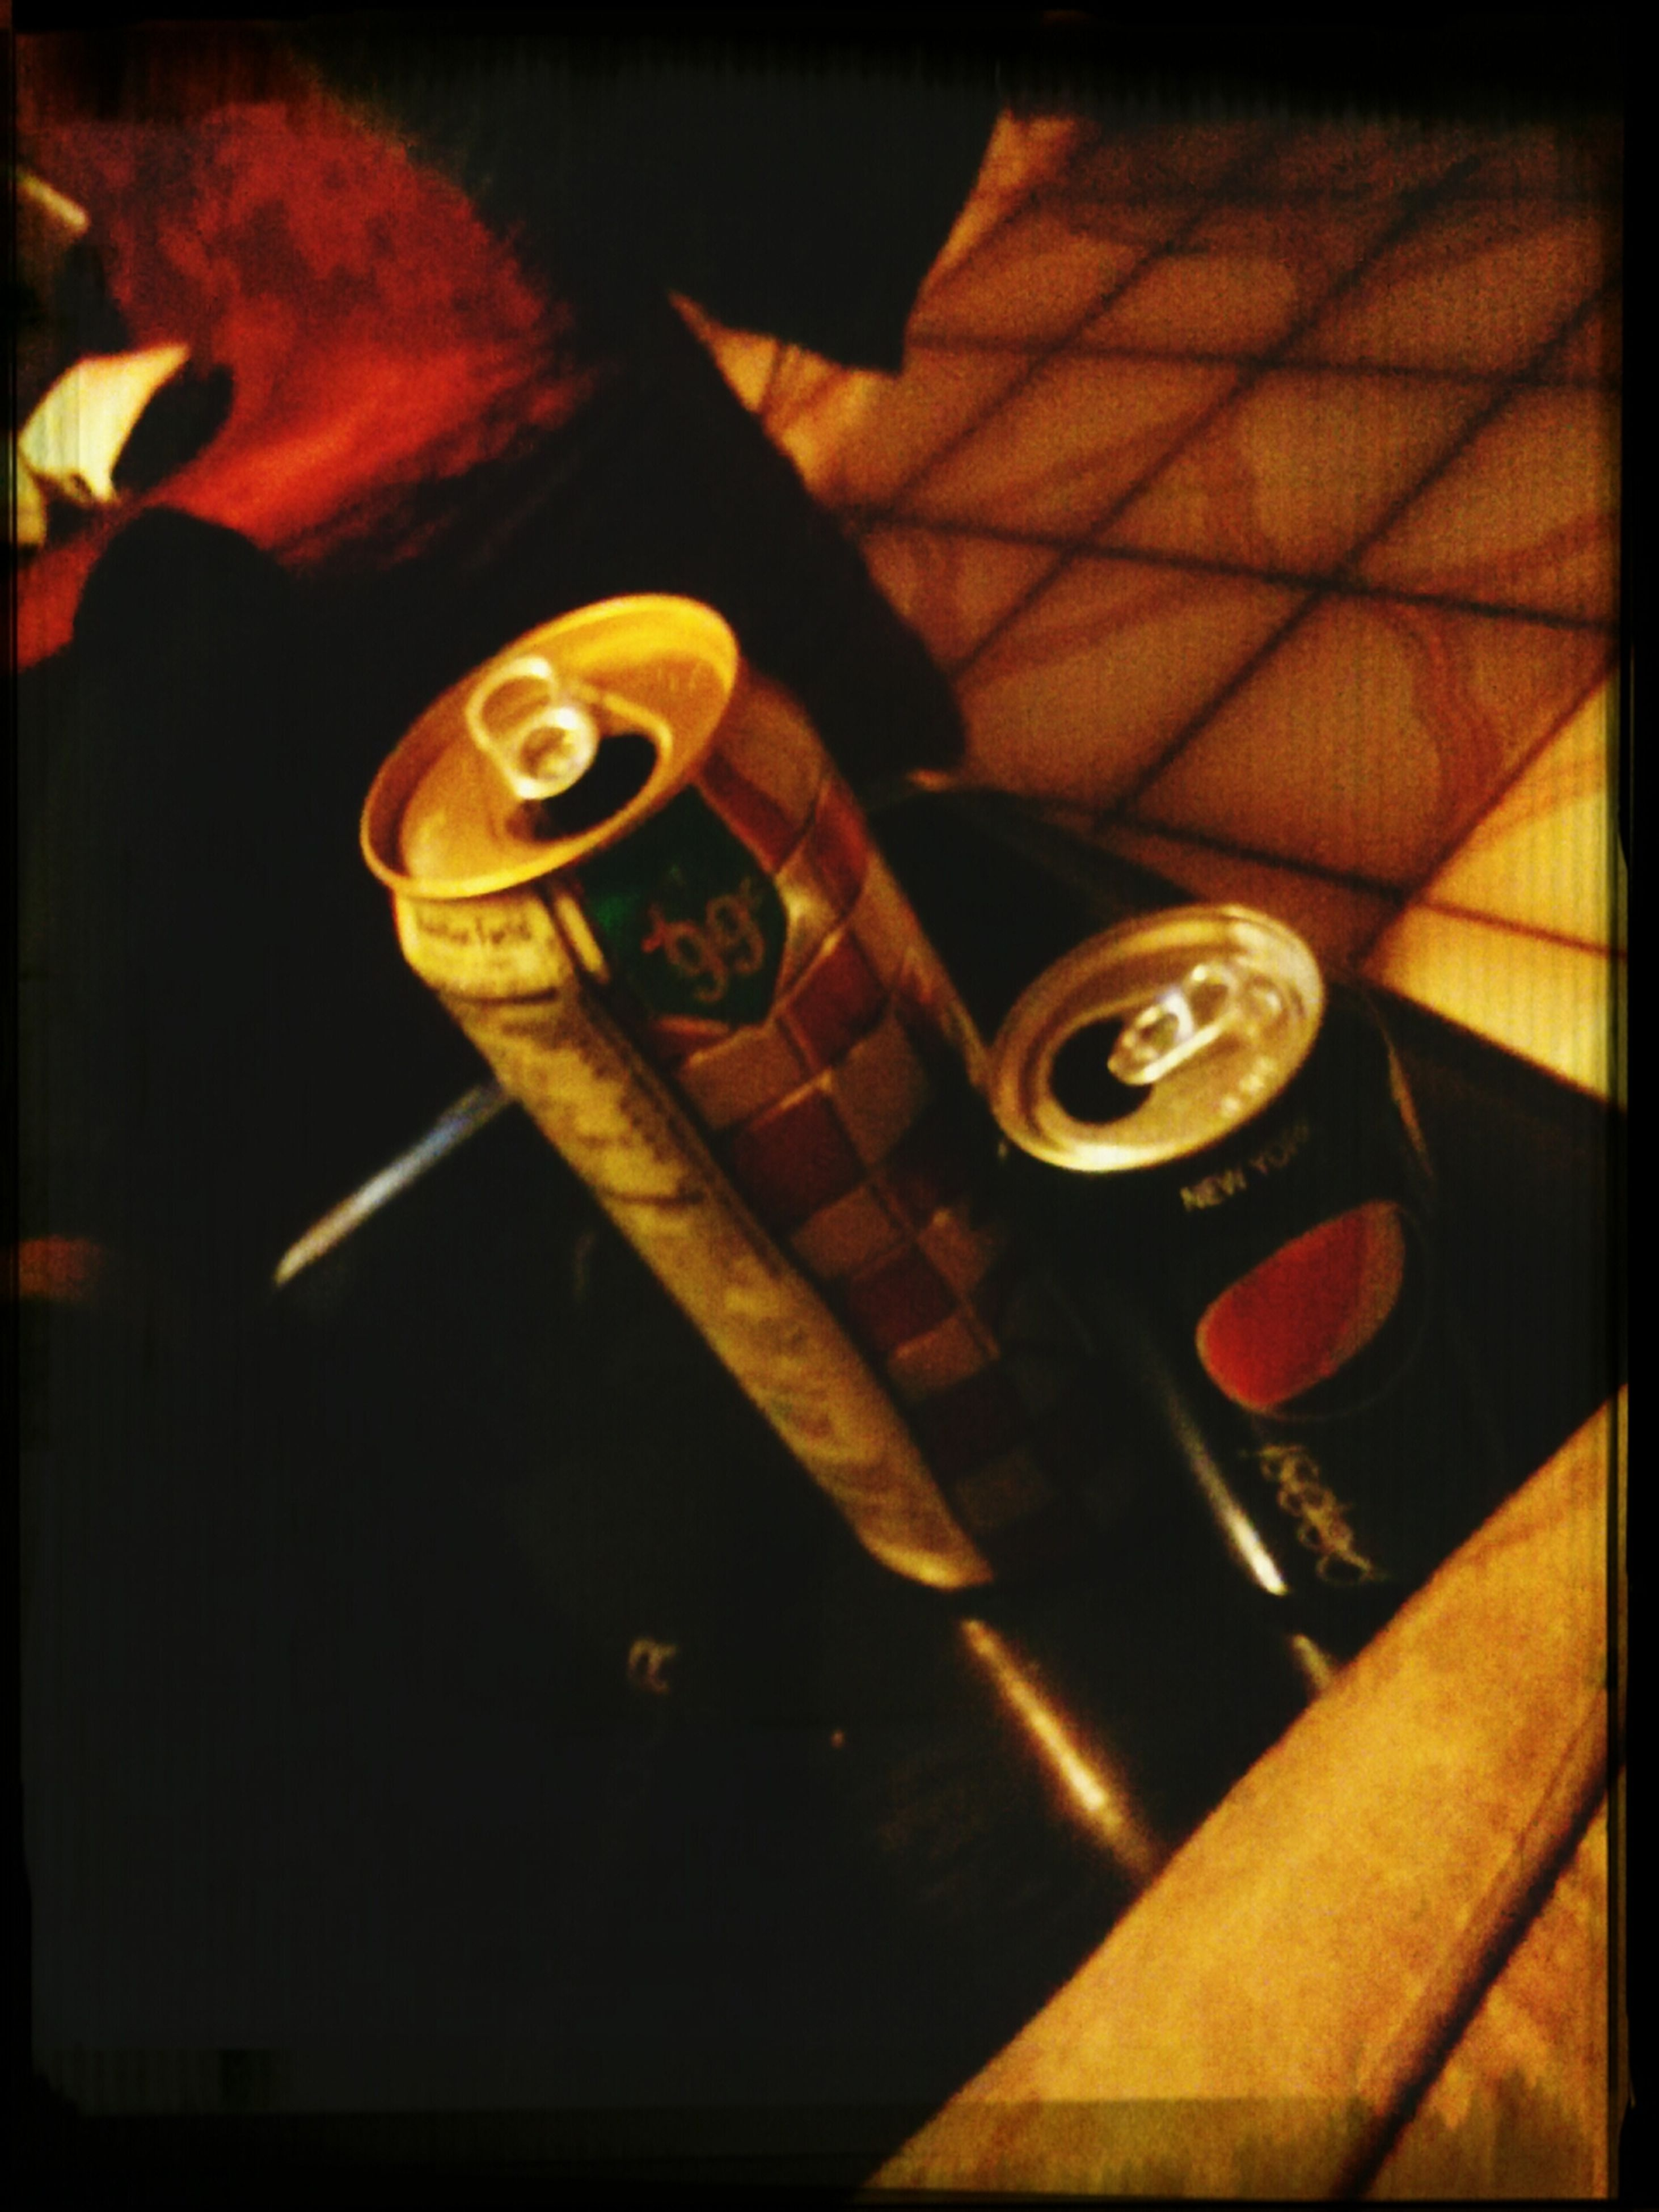 indoors, still life, table, close-up, high angle view, transfer print, auto post production filter, food and drink, wood - material, no people, selective focus, drink, technology, text, focus on foreground, metal, refreshment, part of, elevated view, night